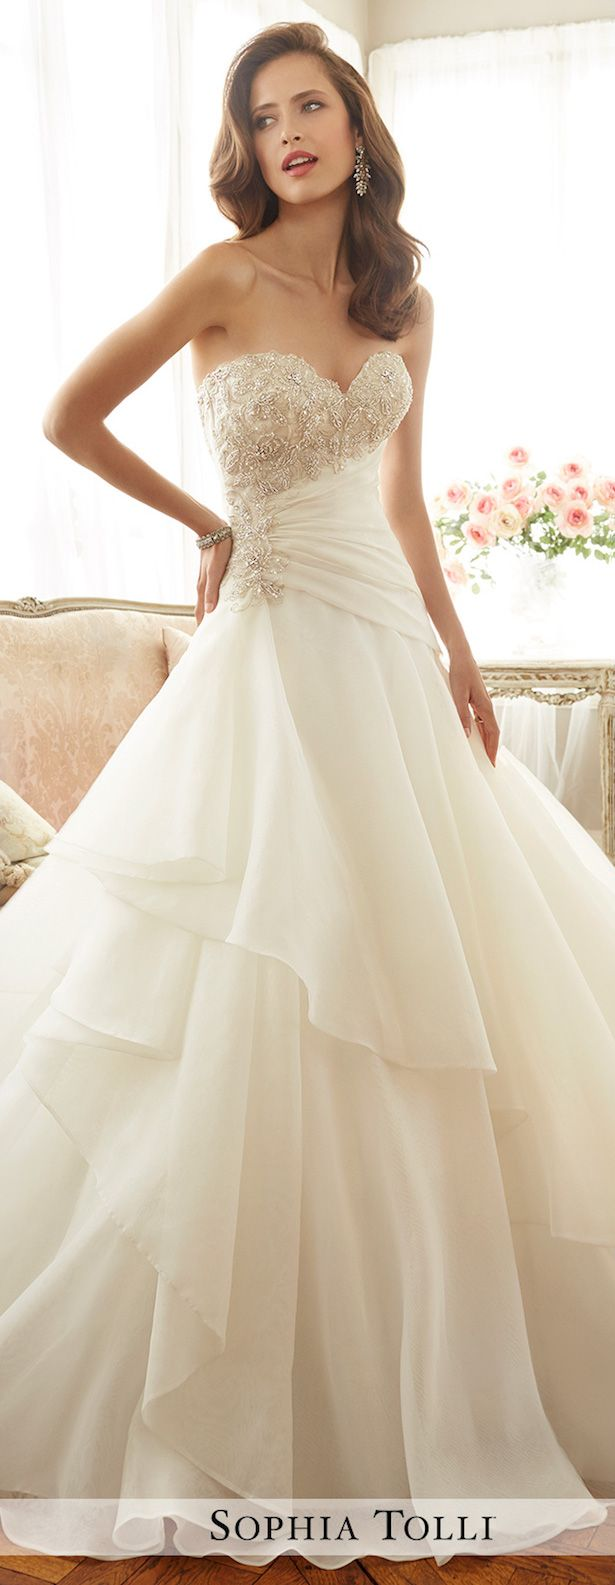 Wedding Dress by Sophia Tolli Spring 2017 Bridal Collection More